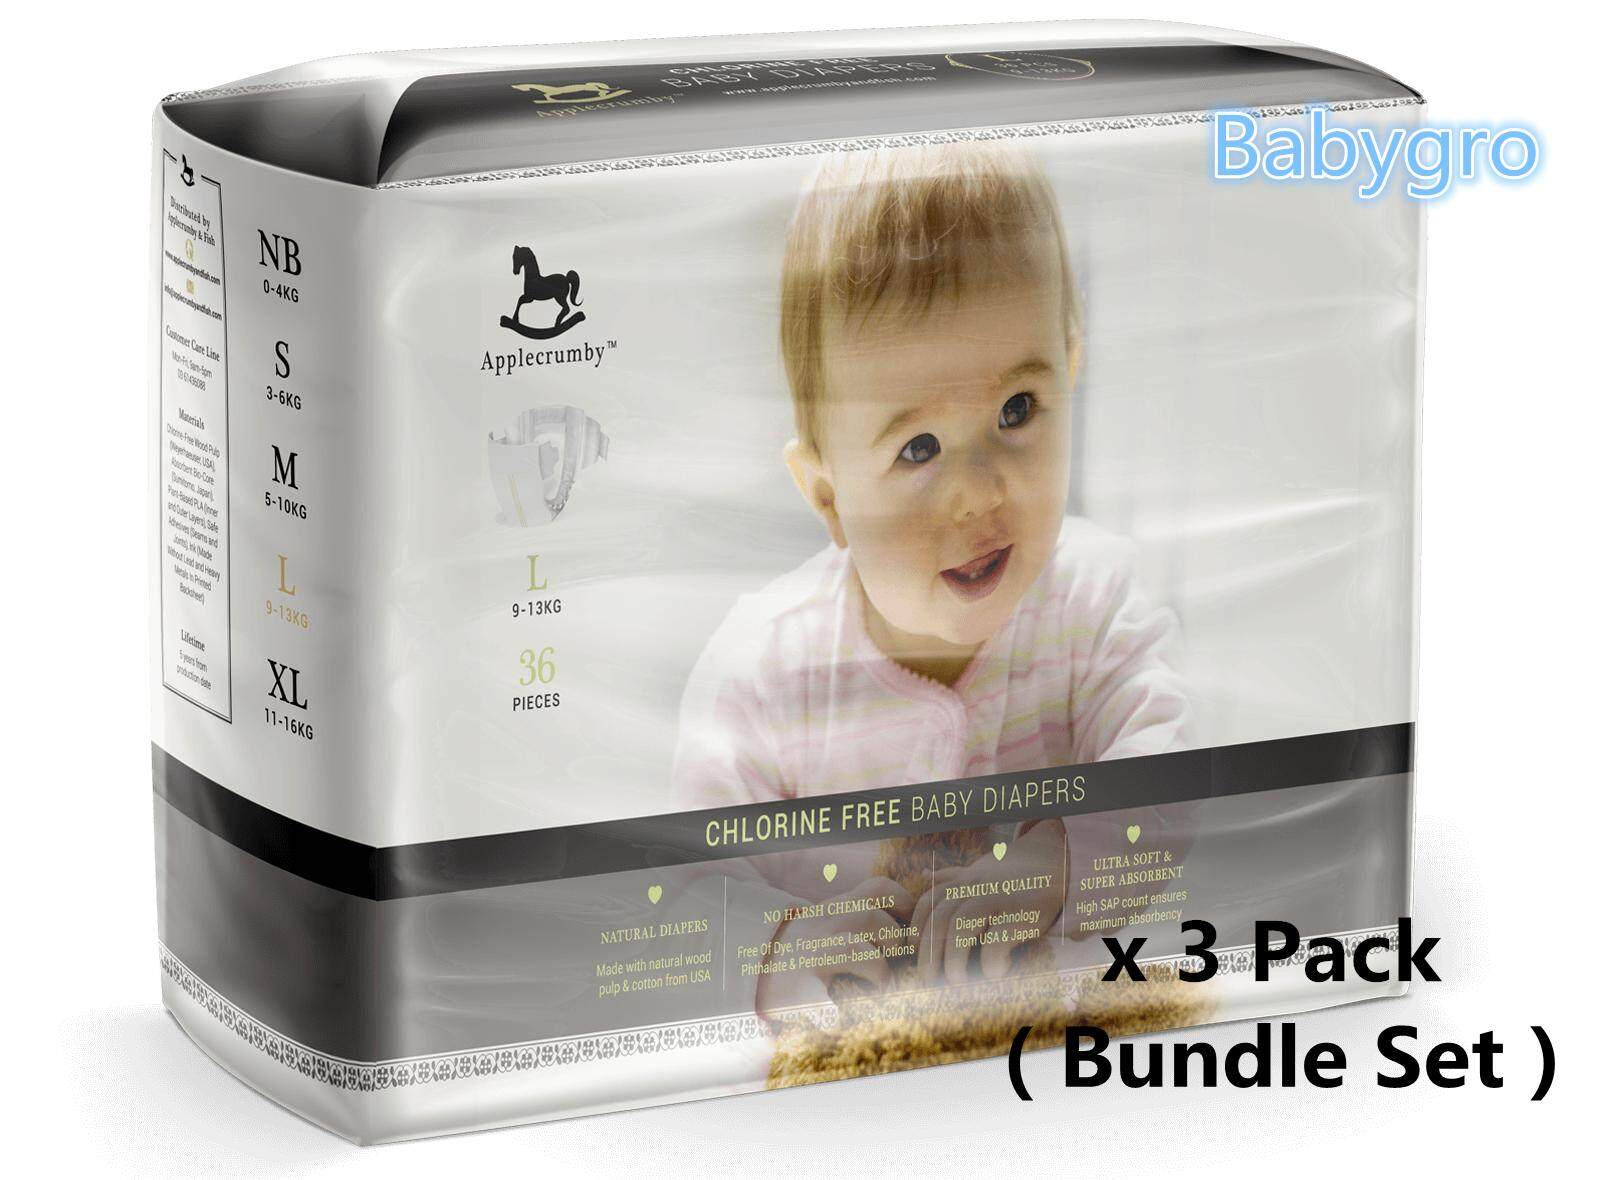 Disposable Diapers Buy At Best Price In Merries Baby New Born 24 S Applecrumby Chlorine Free Premium Diaper Bundle Set 3 Pack Size L